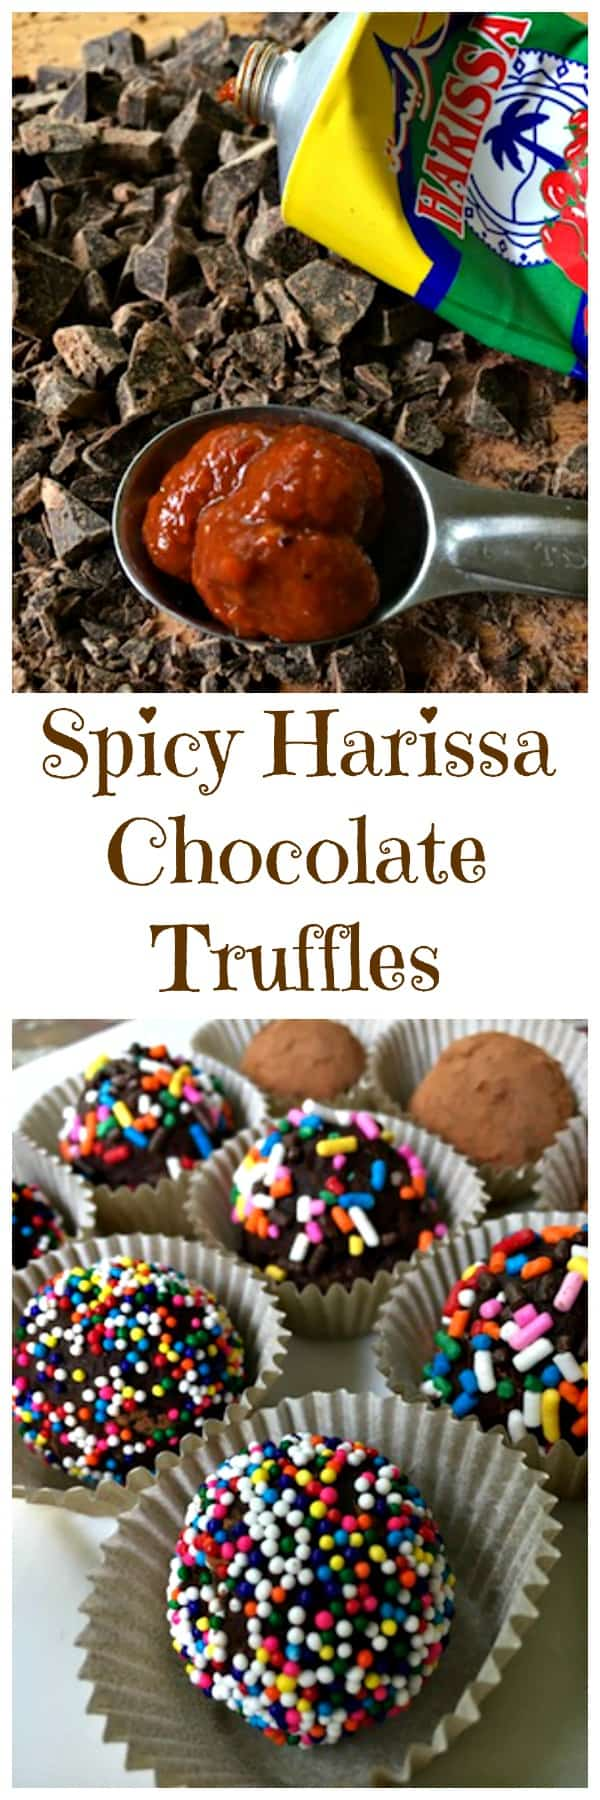 Spicy Harissa Chocolate Truffles